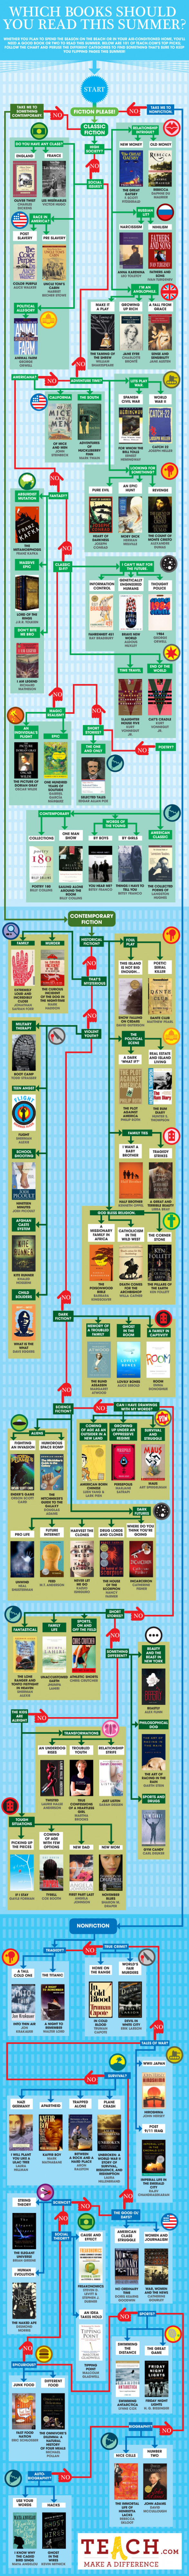 Summer Reading Flowchart: What Should You Read On Your Break?